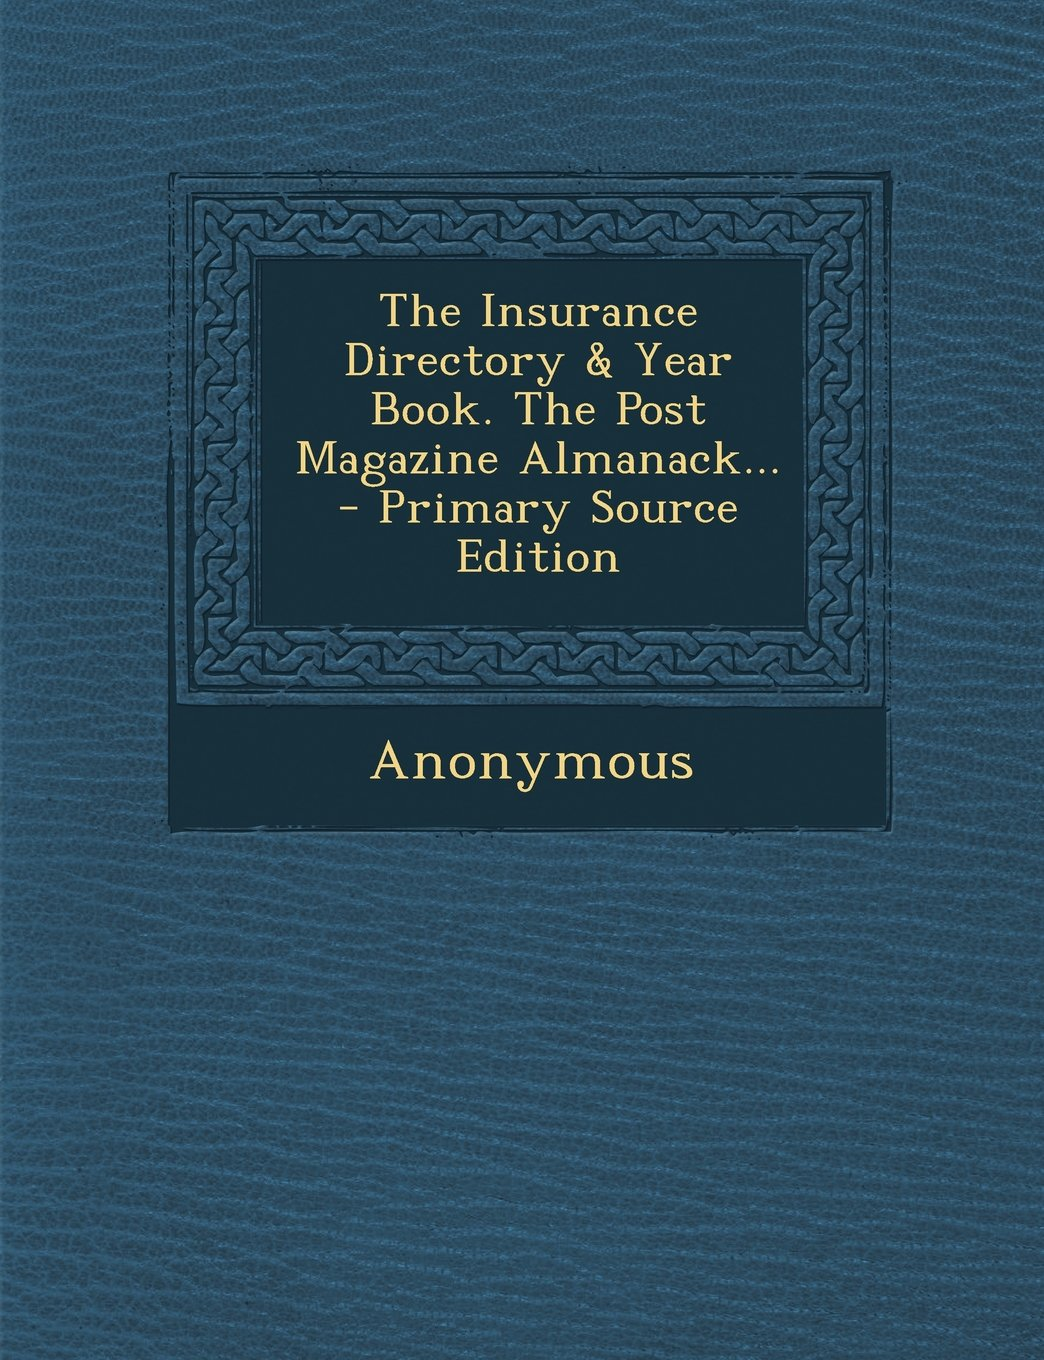 Download The Insurance Directory & Year Book. The Post Magazine Almanack... - Primary Source Edition pdf